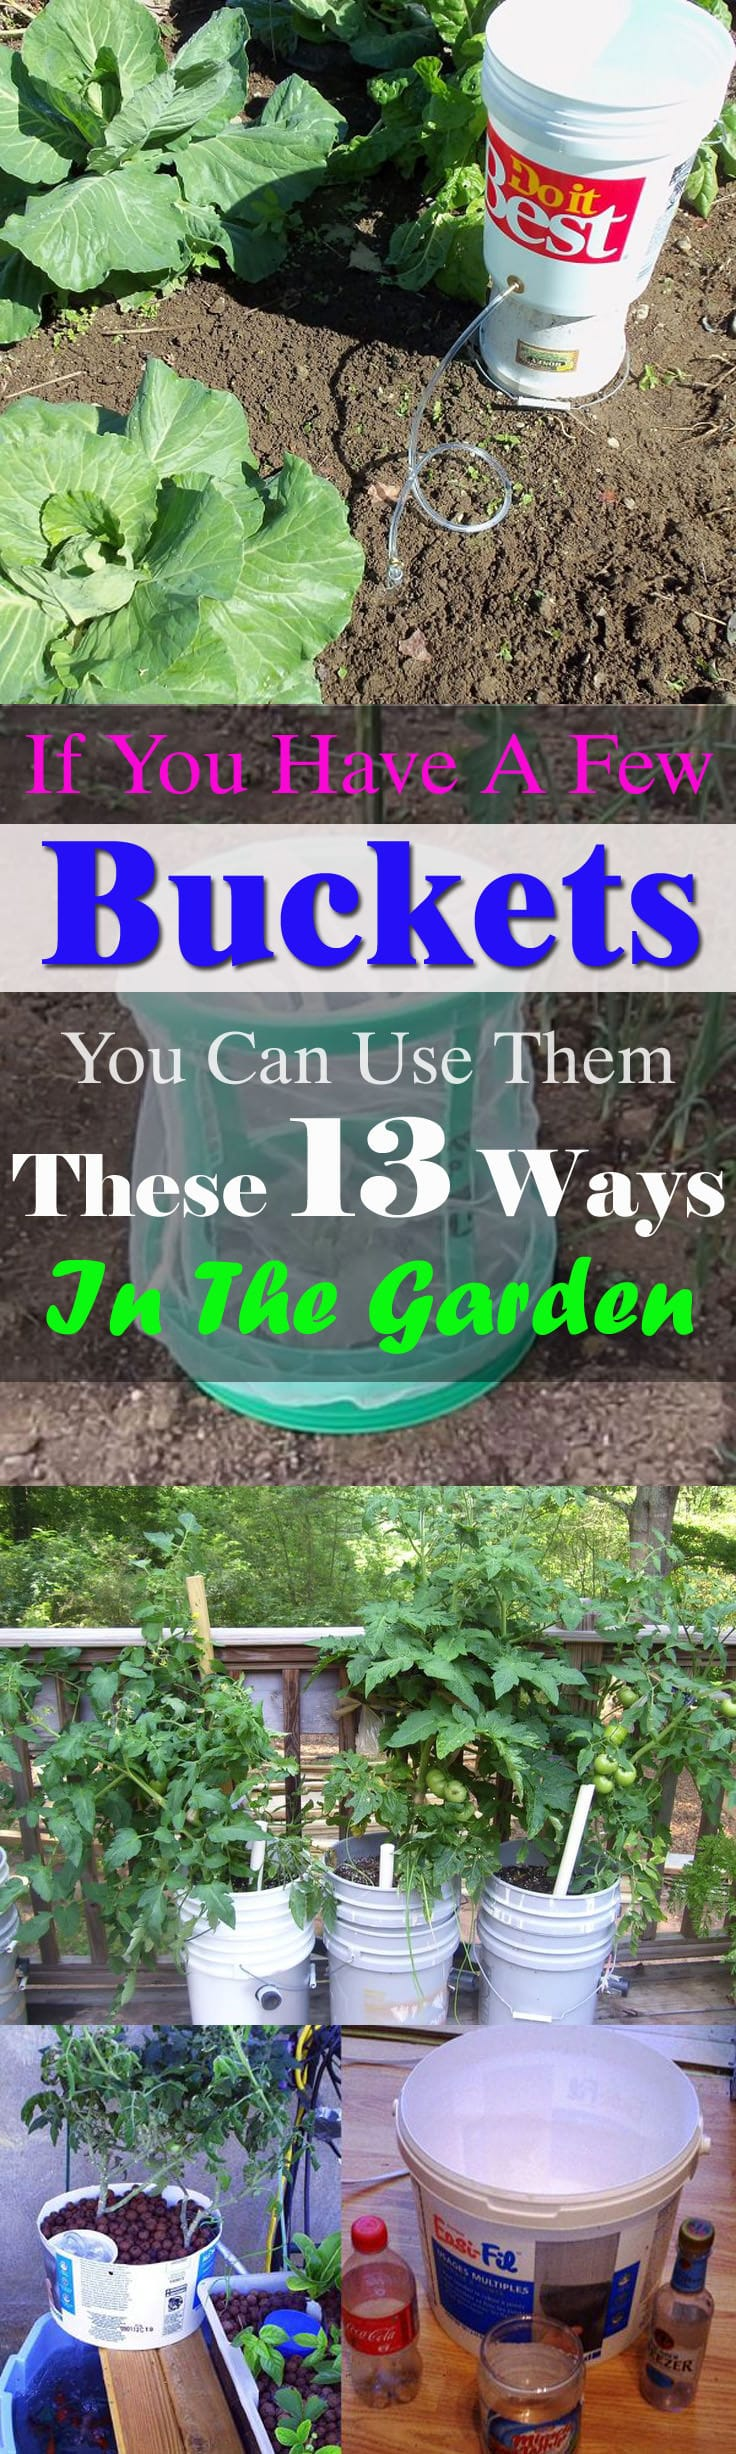 If you've got a few unused buckets in your home, there are 13 ways to reuse them in your garden!